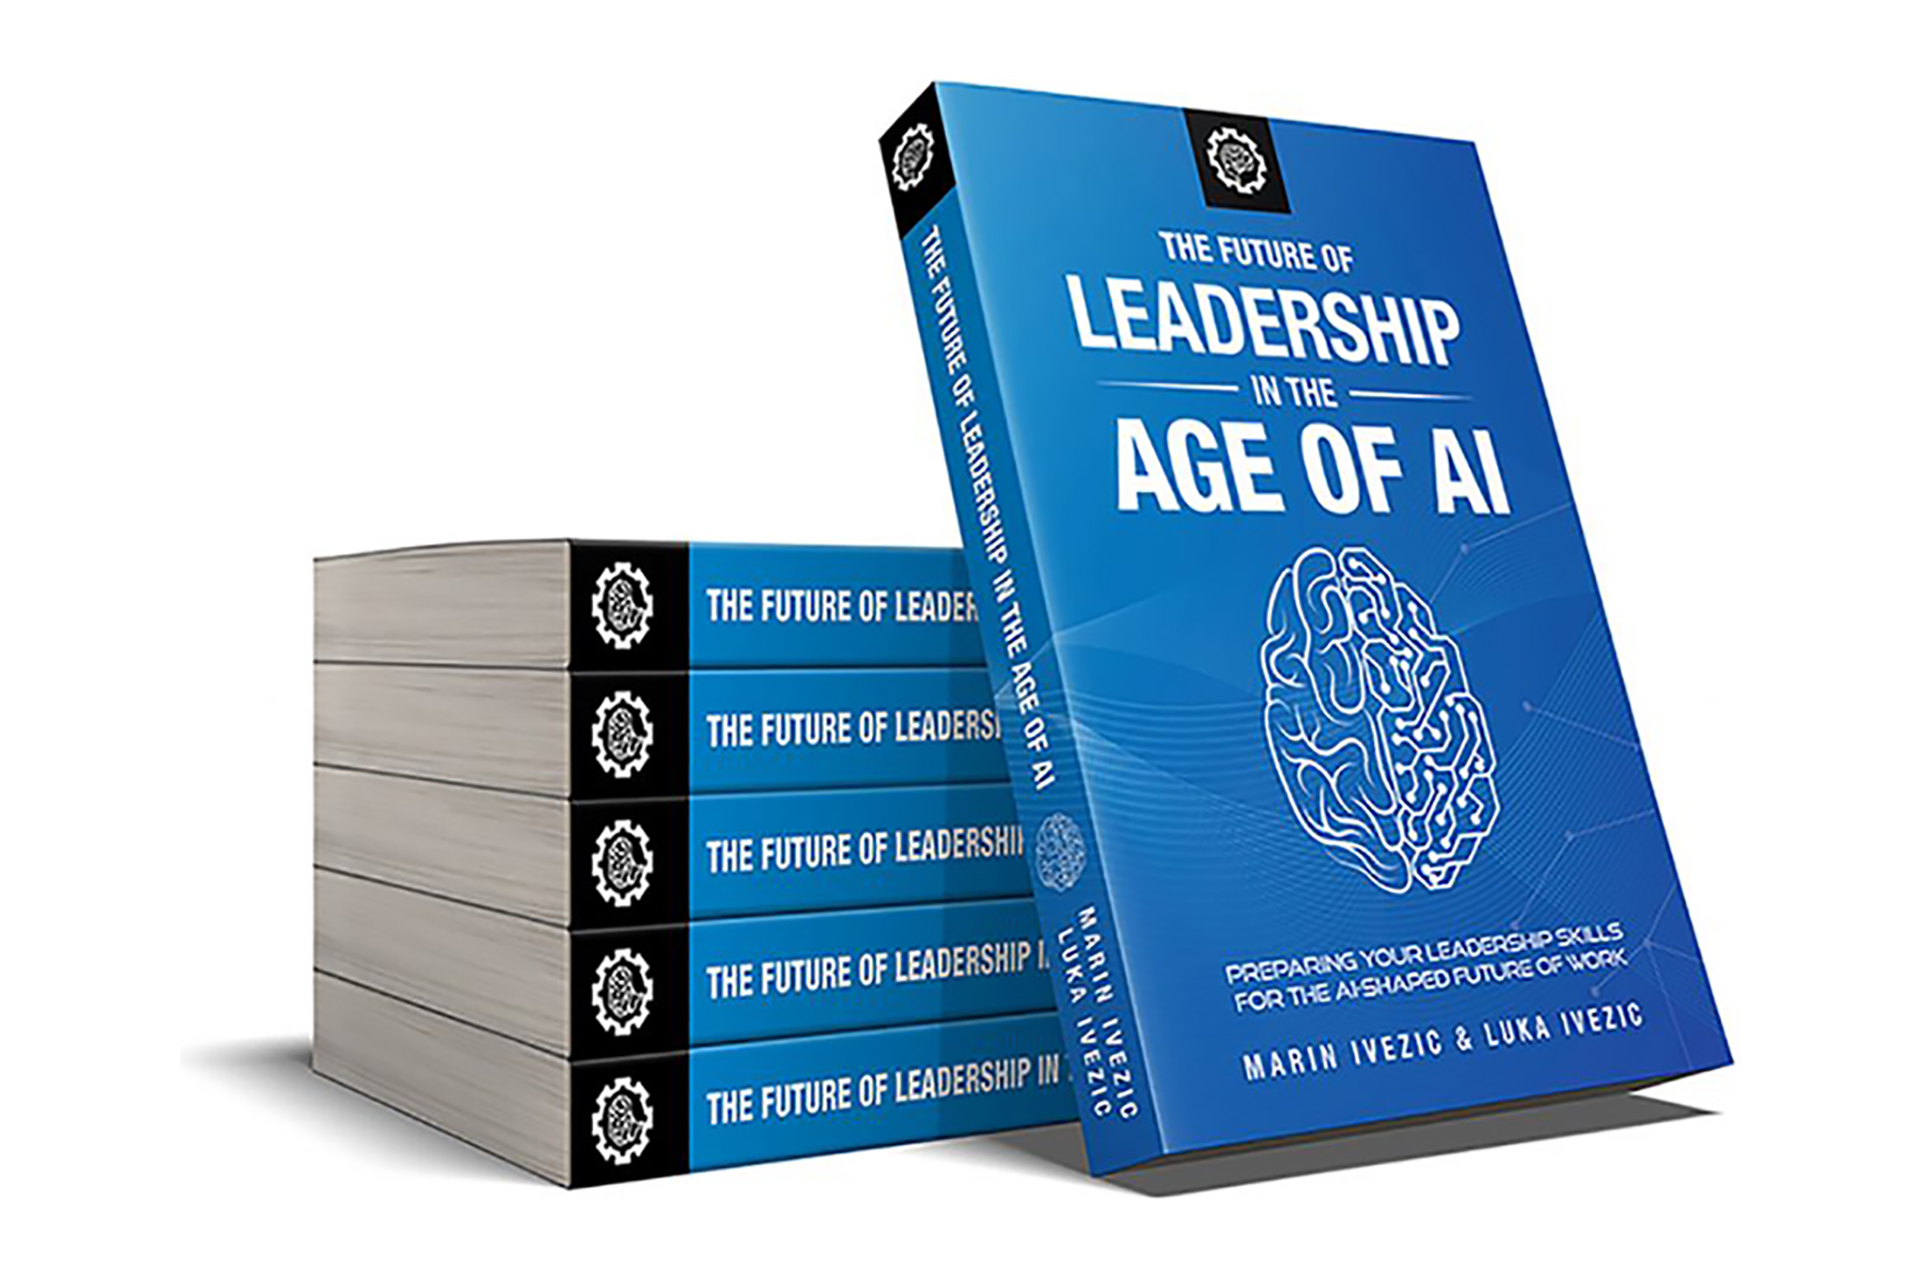 The Future of Leadership in the Age of AI Book